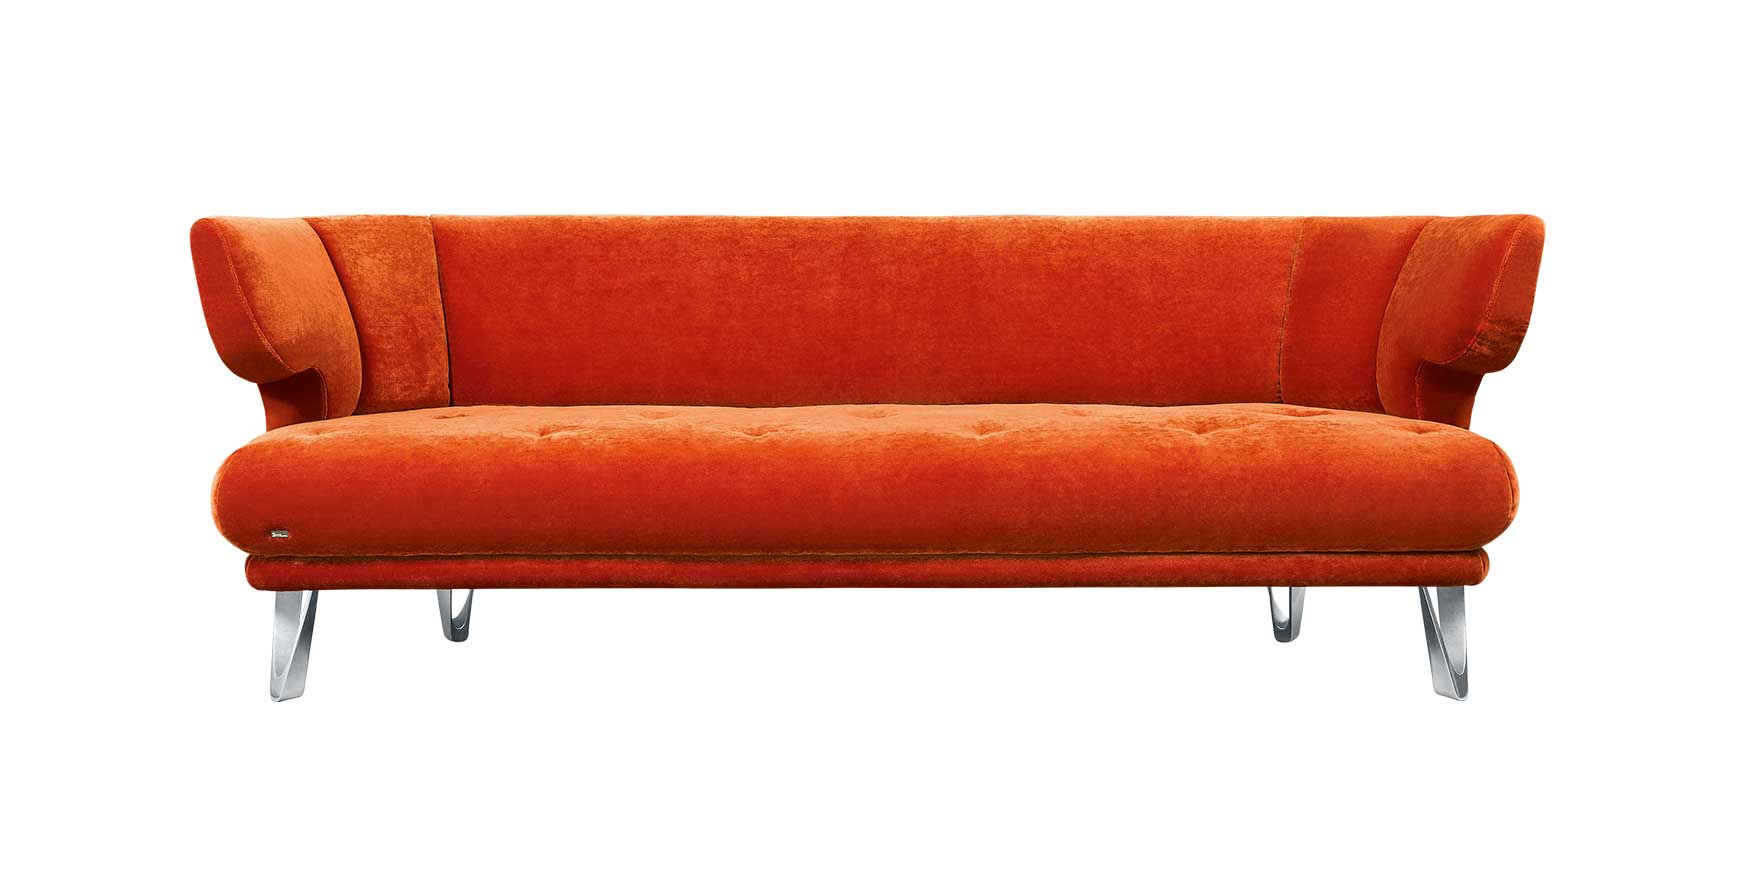 croissant f113 sofa von bretz in kupfer rot bretz designerm bel n rnberg. Black Bedroom Furniture Sets. Home Design Ideas